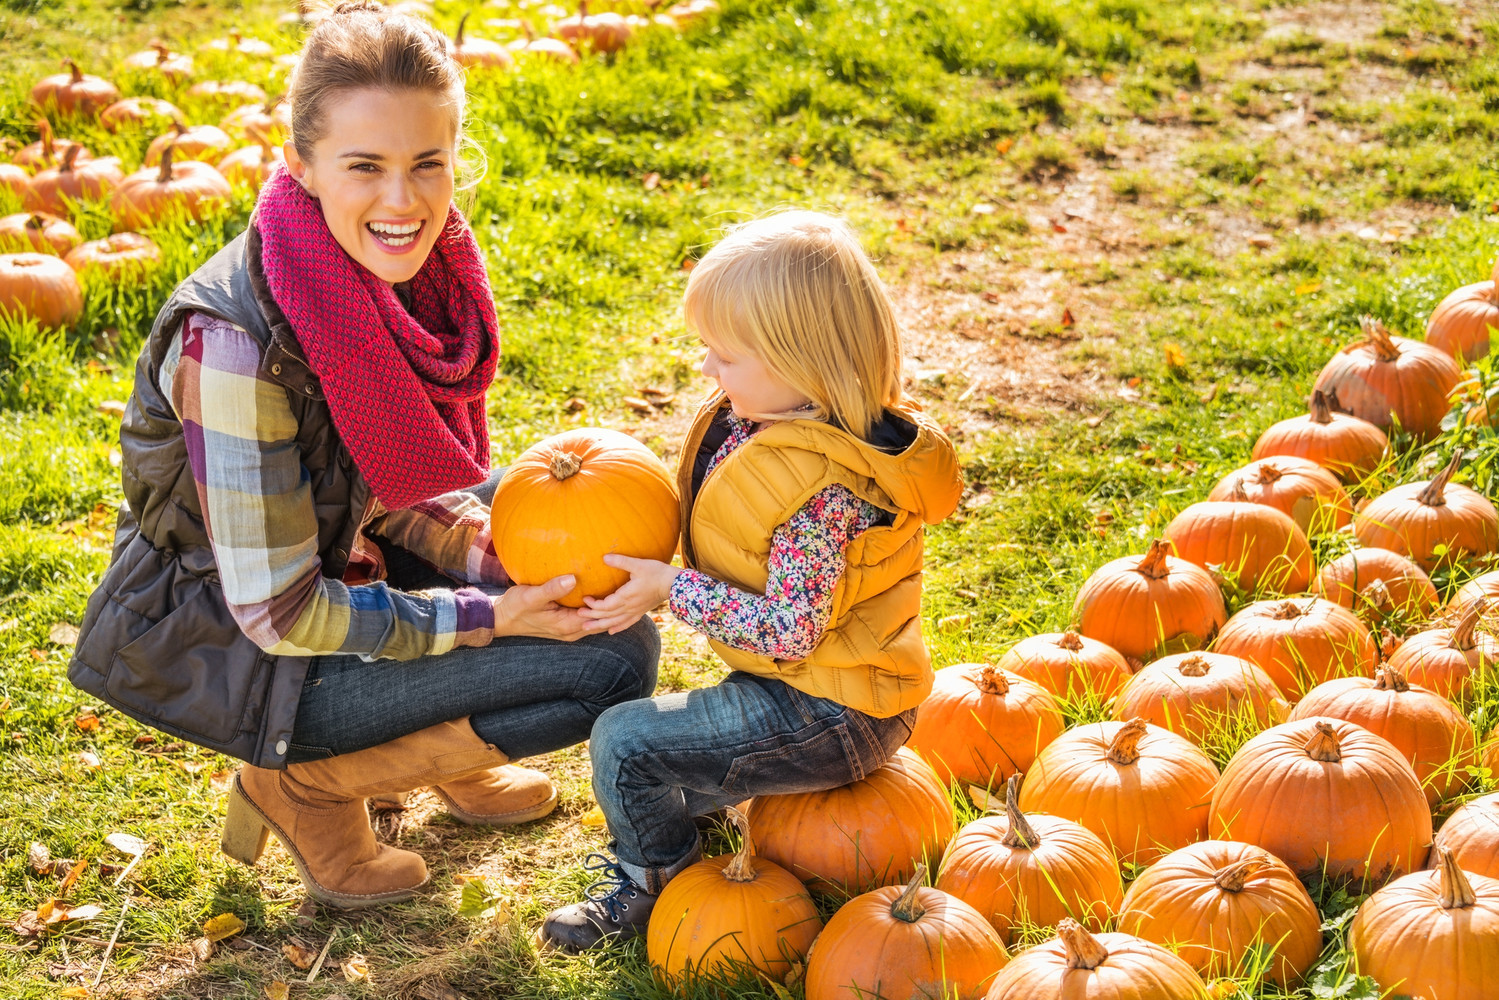 Beautiful smiling woman and child choosing a pumpkin on a pumpkin patch on farm during the autumn season